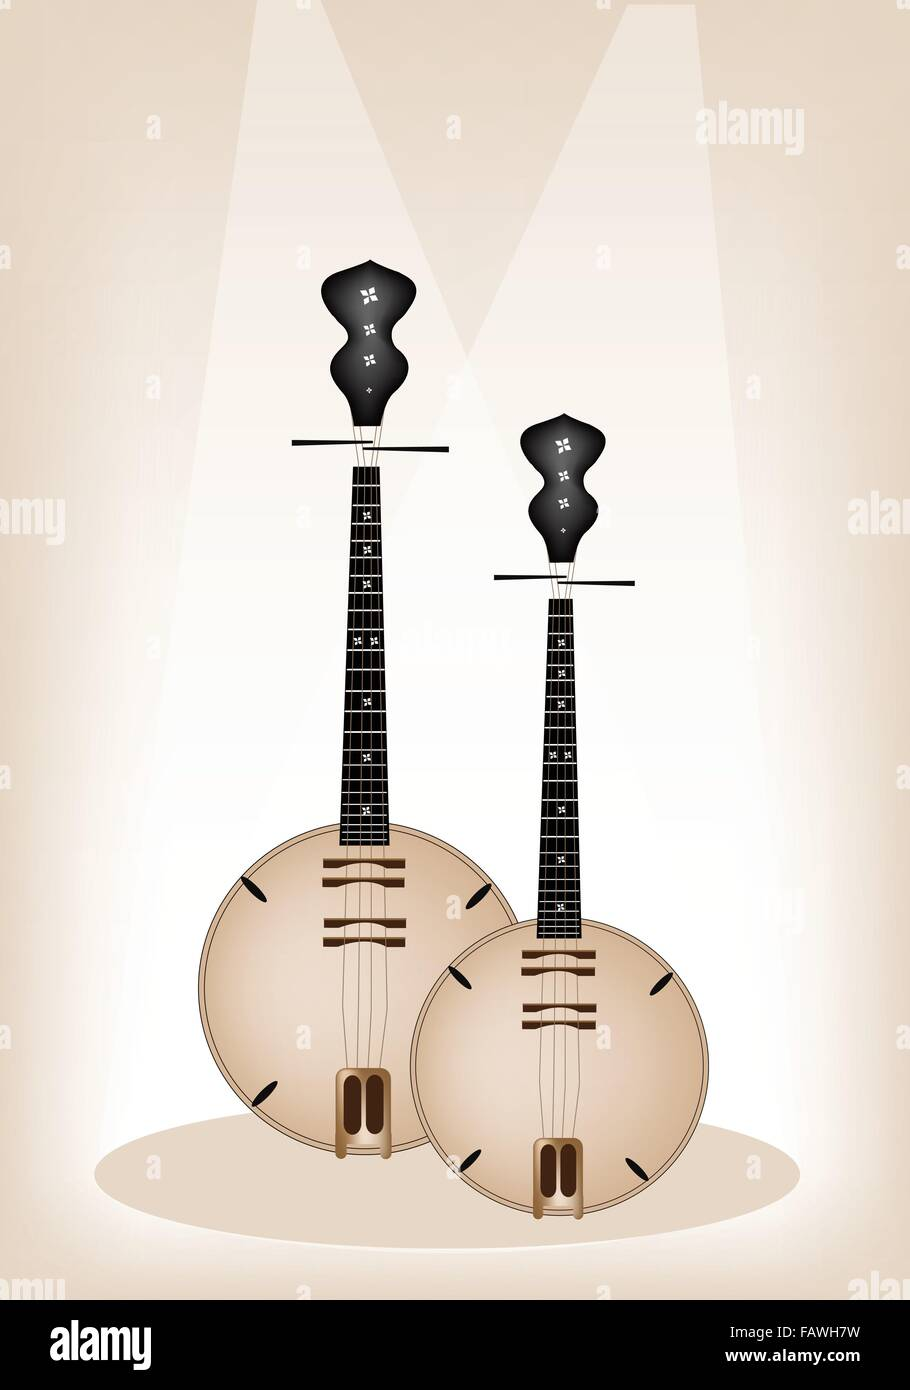 Music Instrument, An Illustration Brown Color of Banjo or Dan Nguyet on Brown Stage Background with Copy Space for - Stock Image